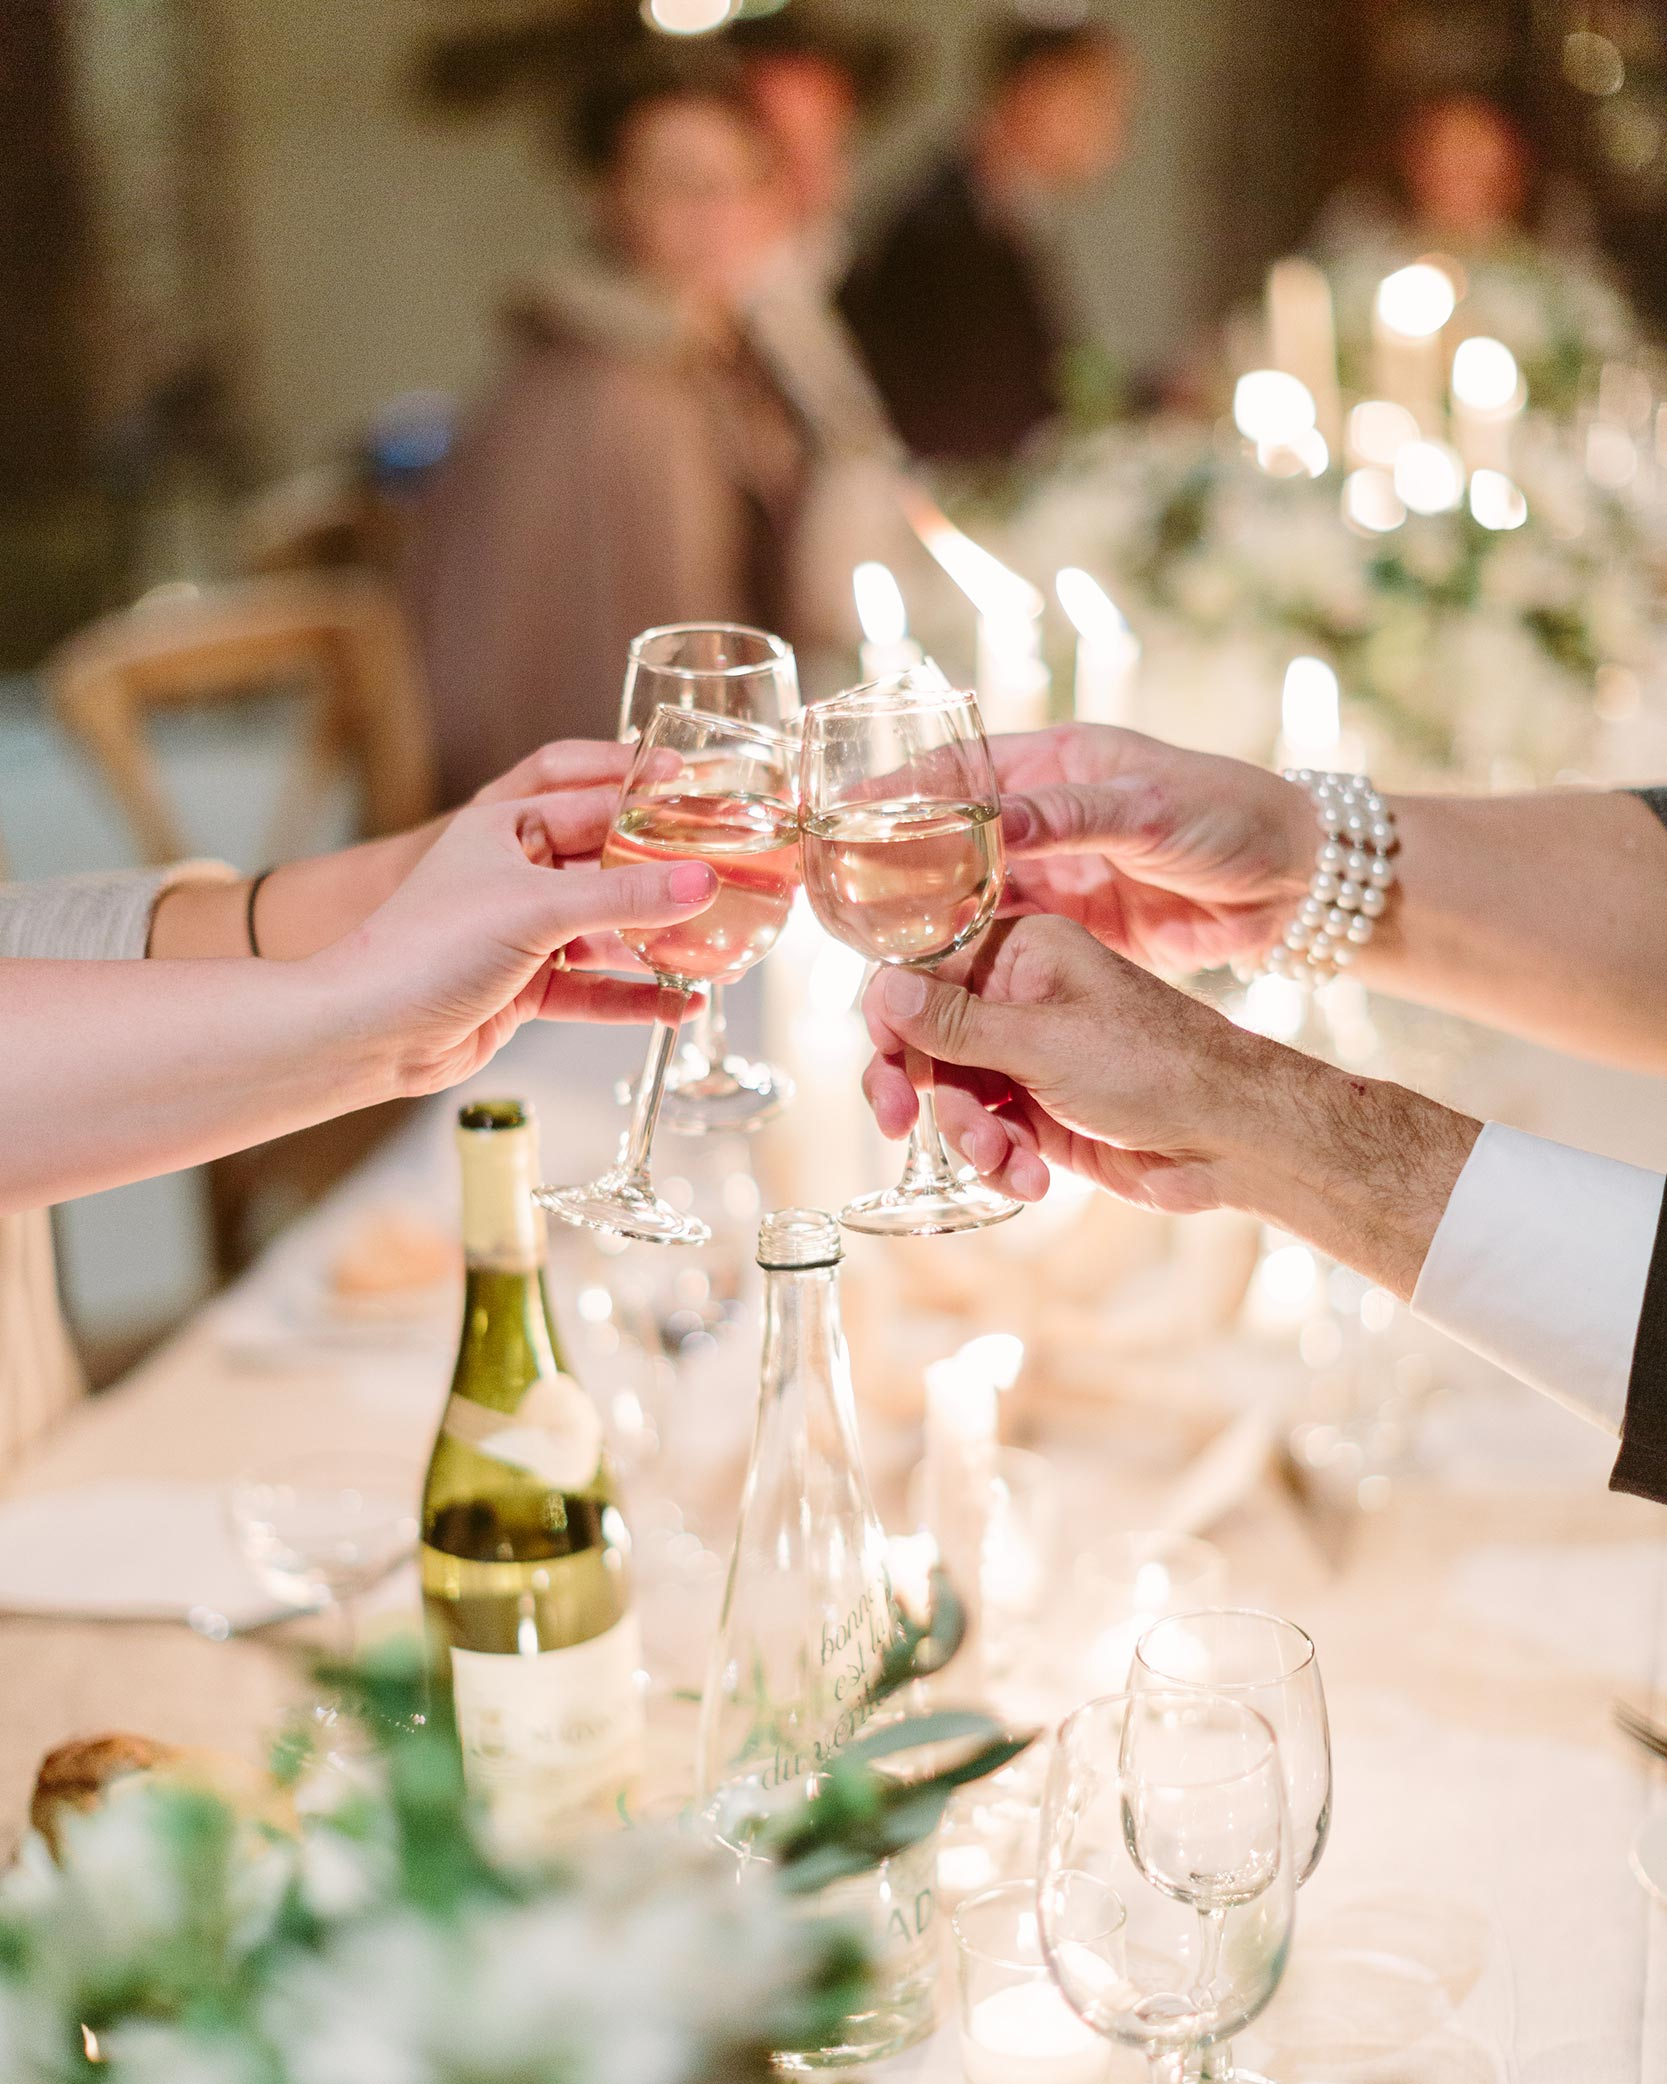 How Do You Organize Engagement Party Toasts?